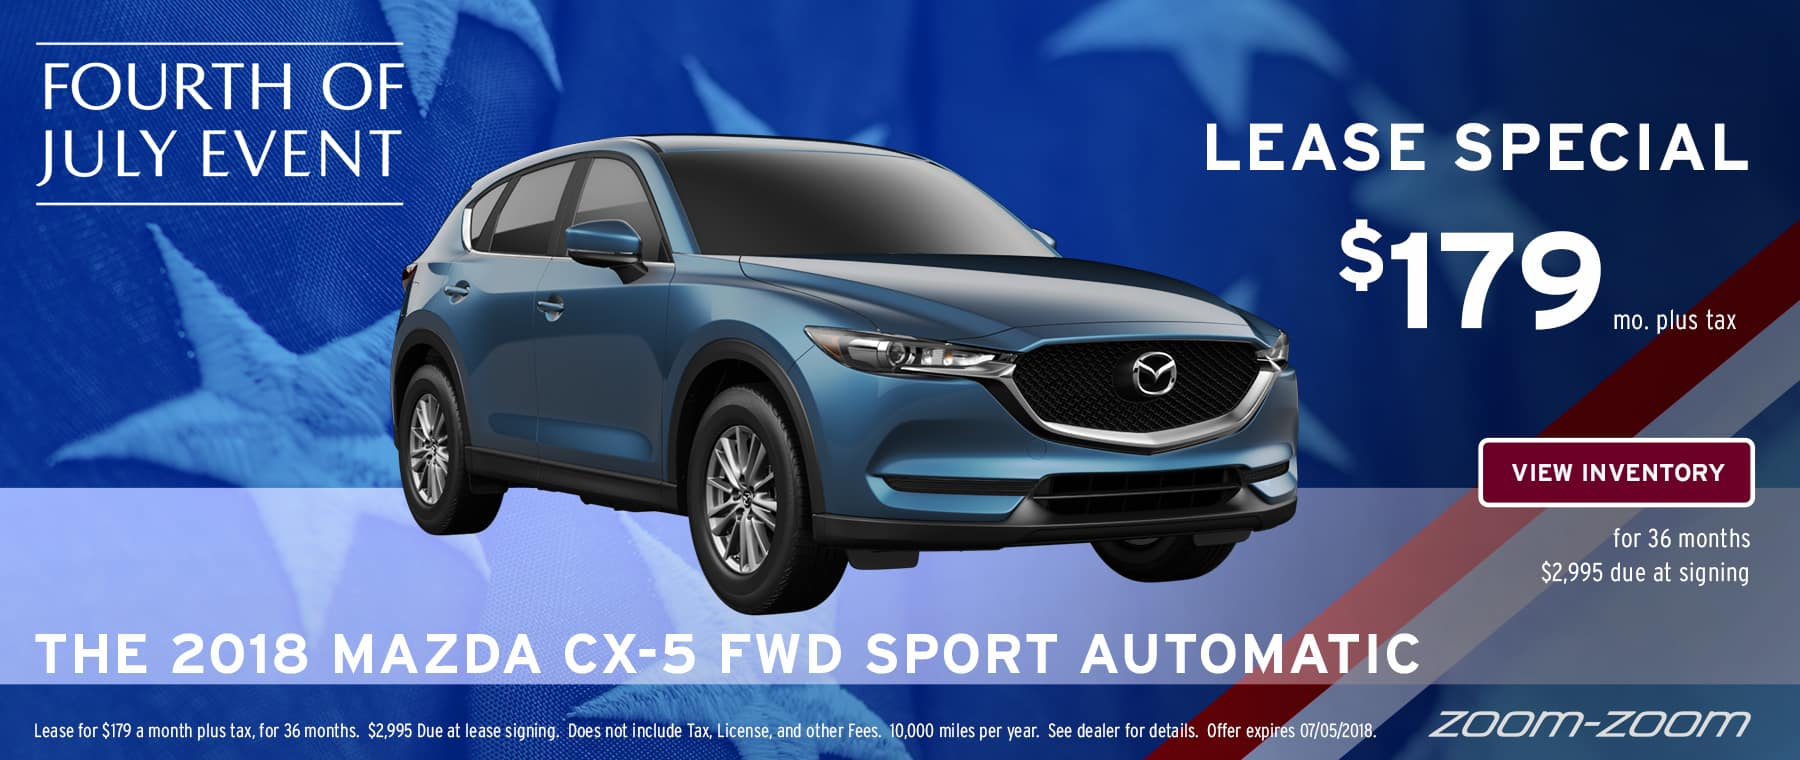 cx local is your offering us nearest about great mazda dealer bairnsdale cy